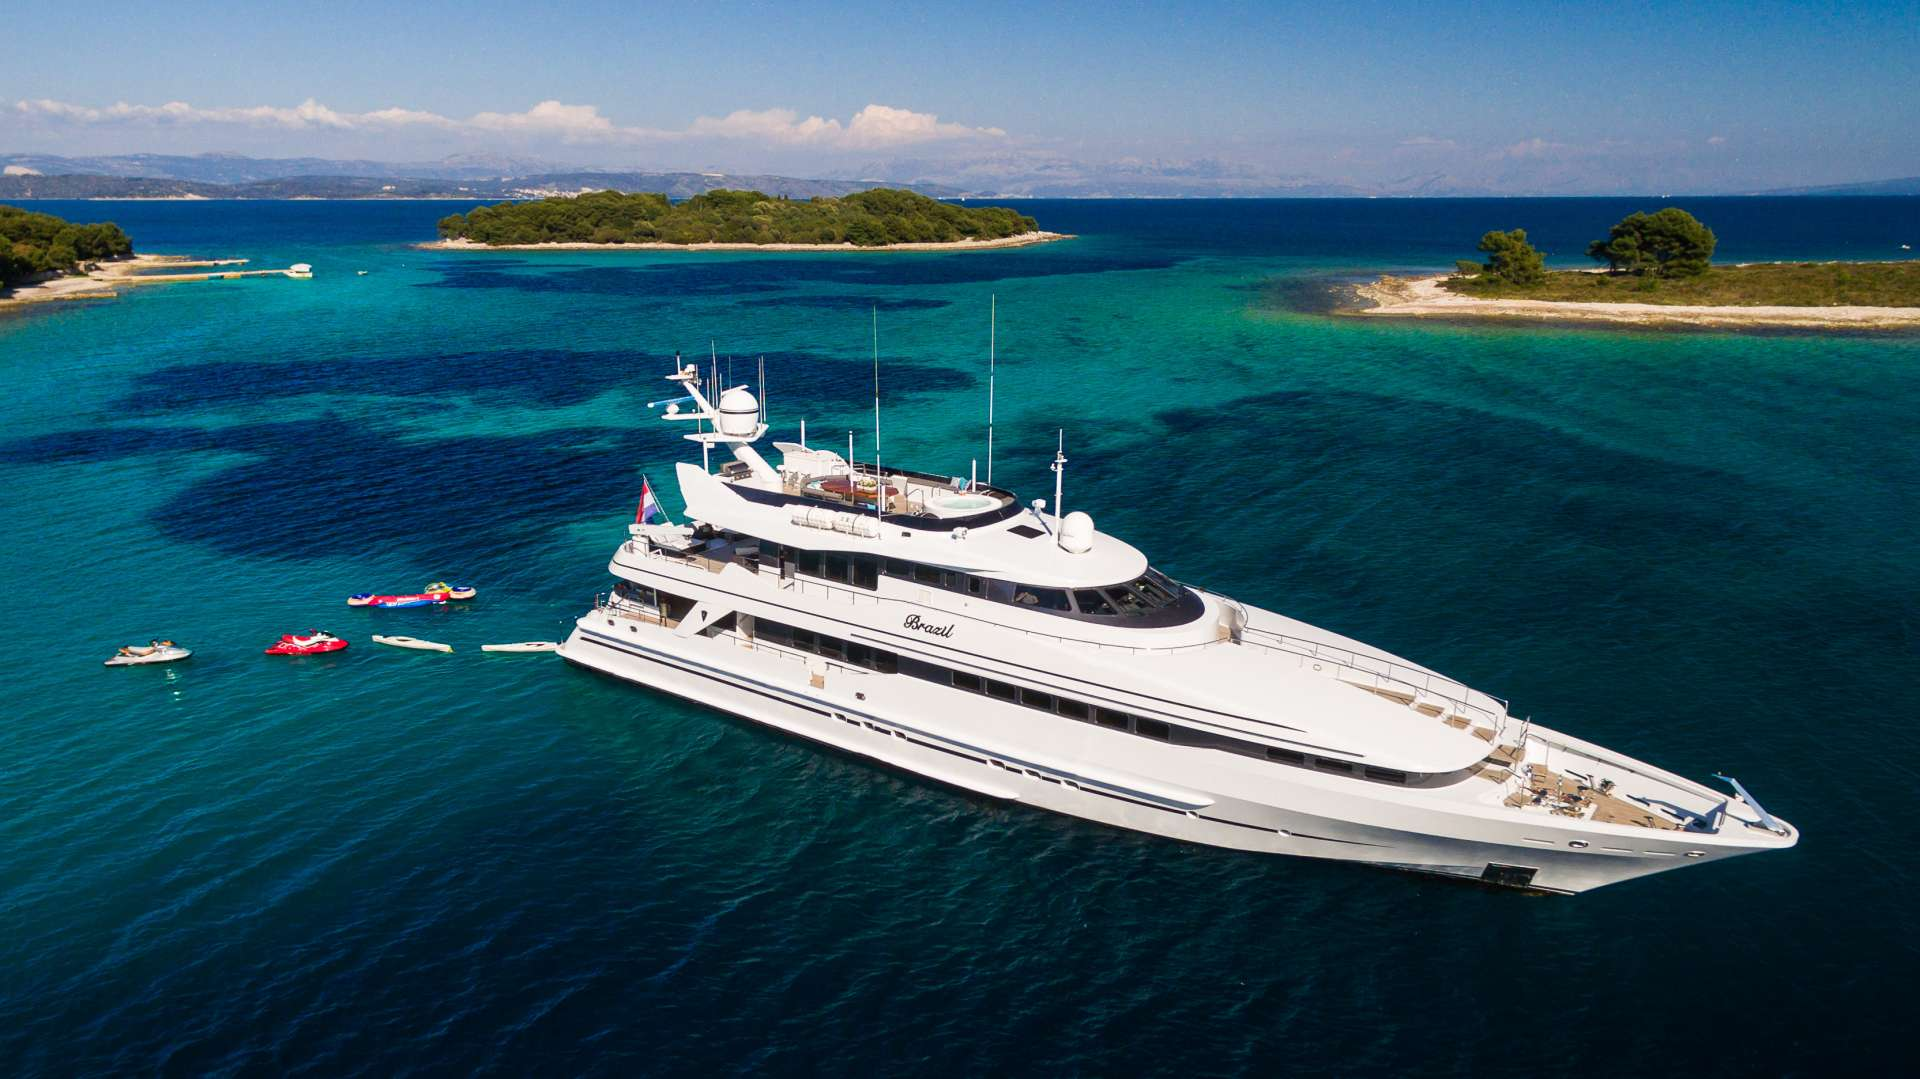 Charter with BRAZIL on compassyachtcharters.com